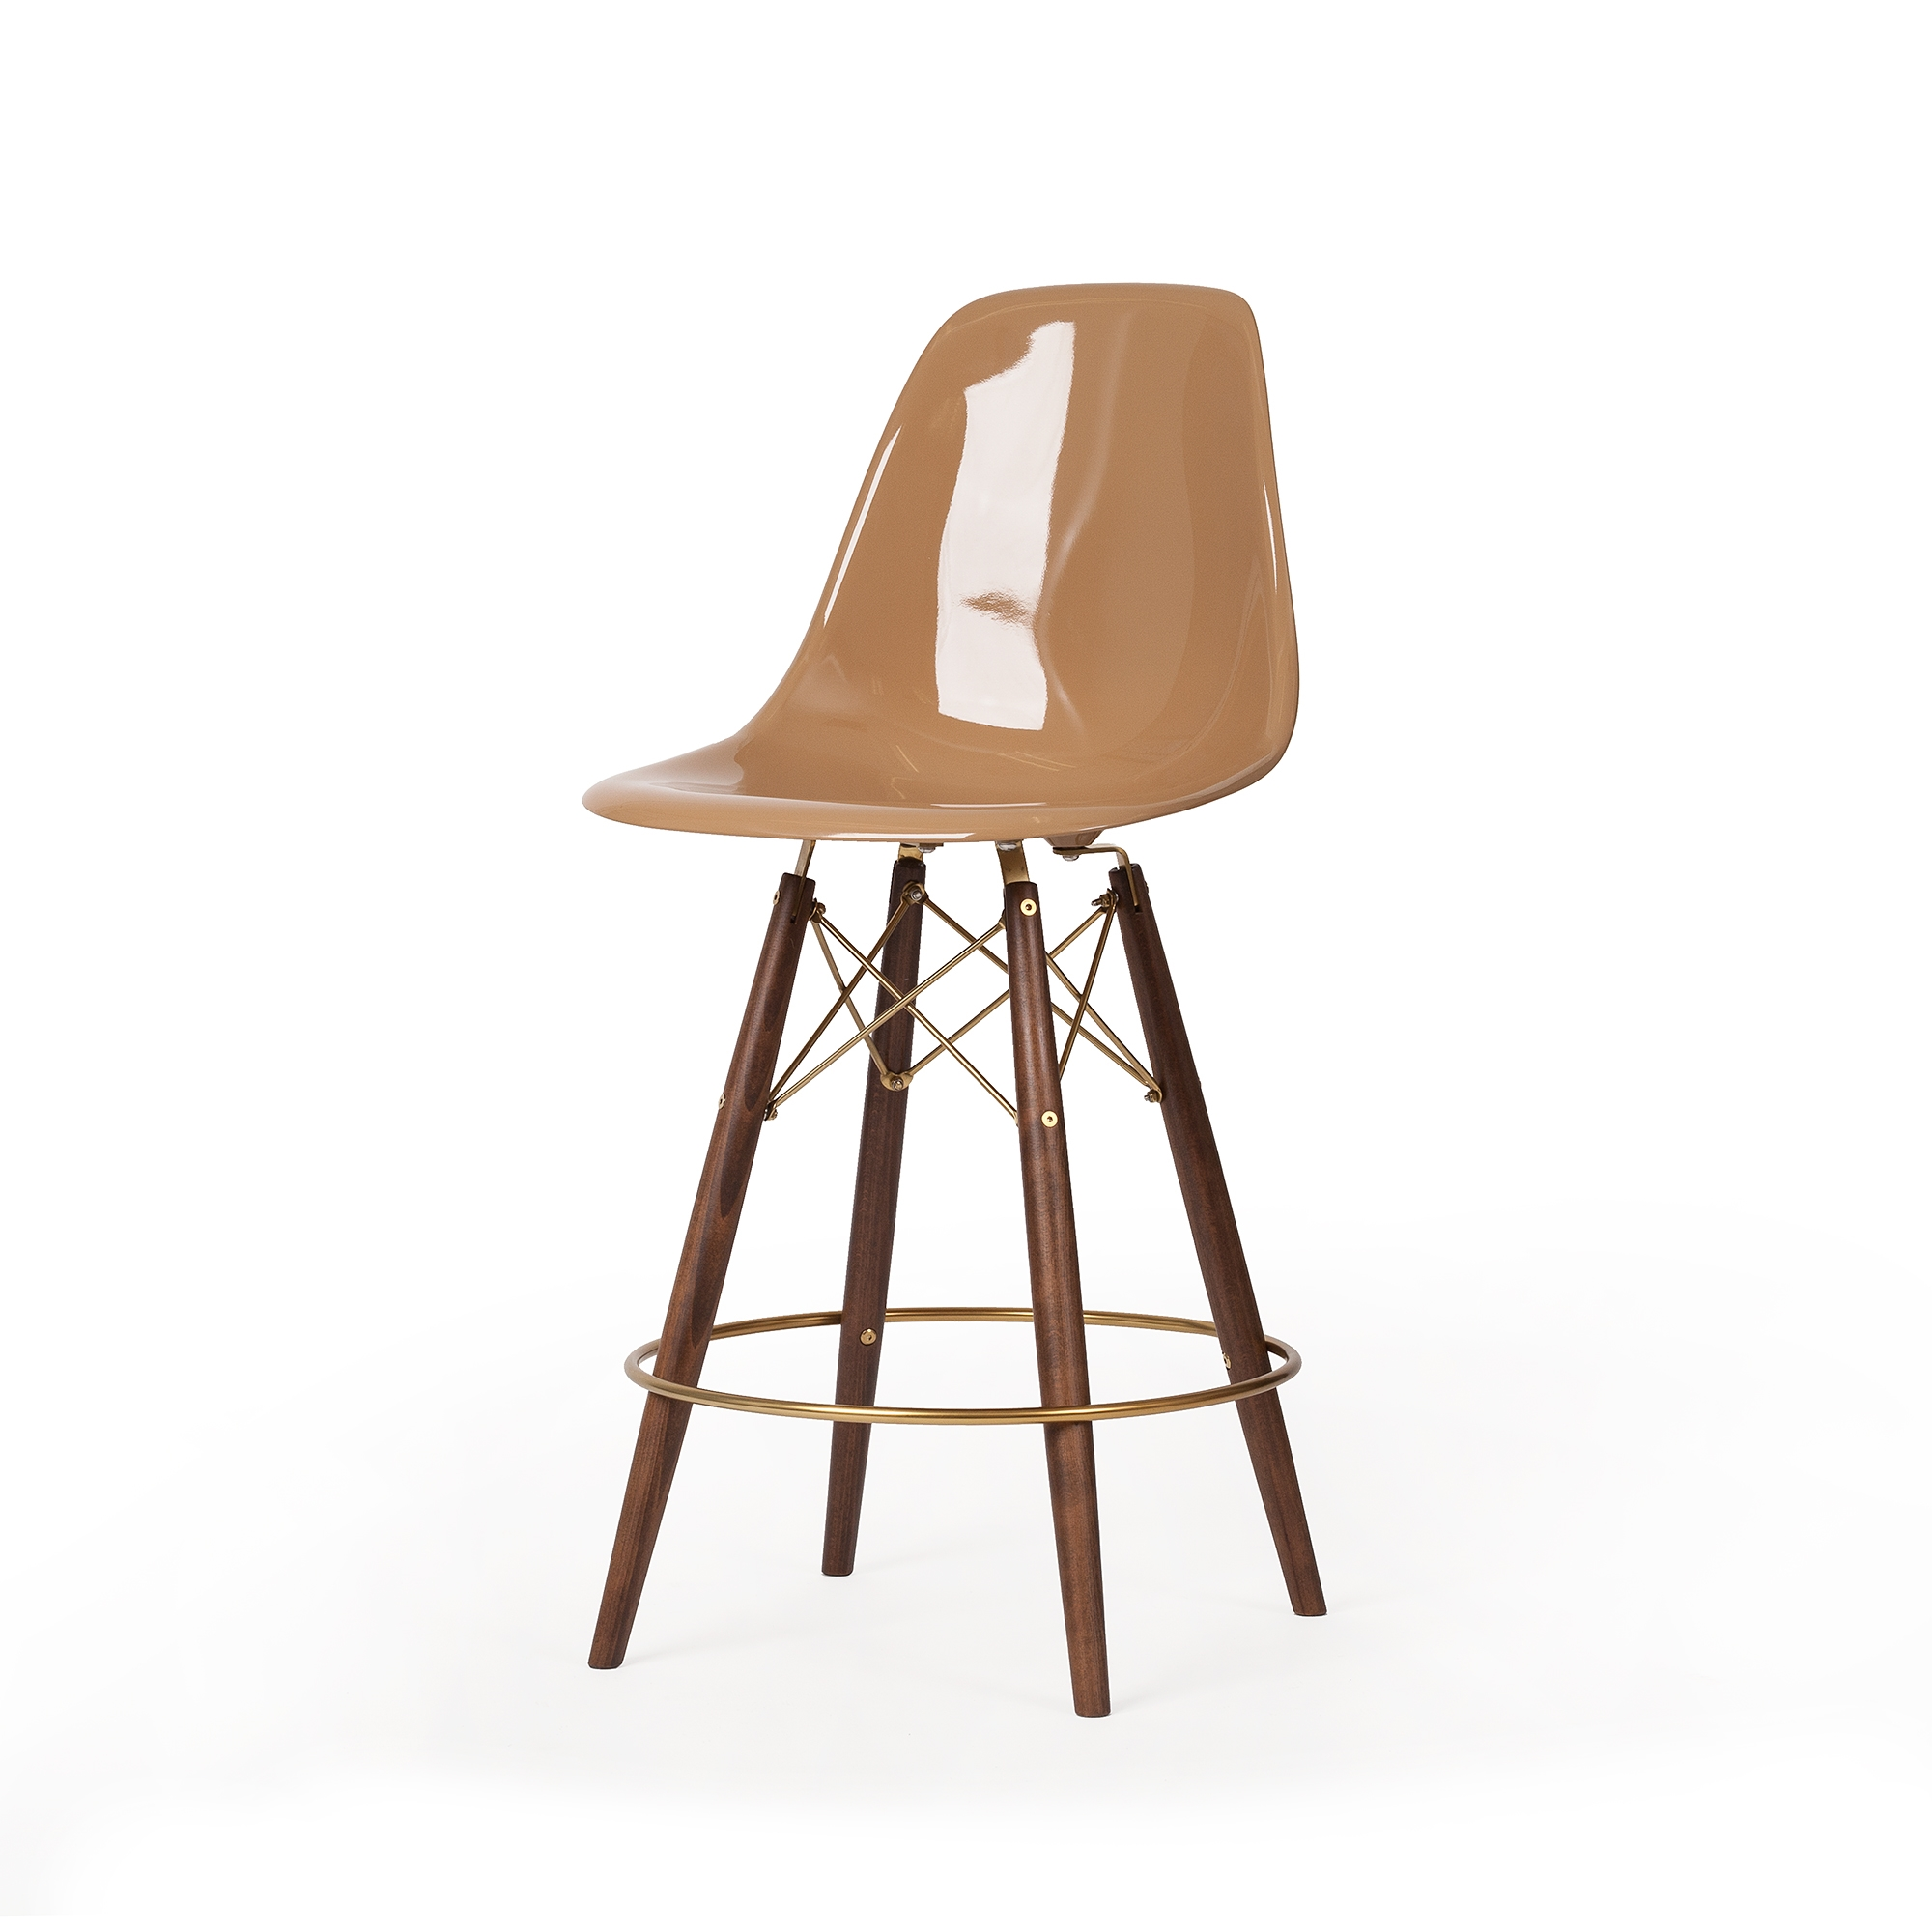 Phenomenal Molded Light Latte Brown Fiberglass Midcentury Modern Counter Stool Champagne Gold Detail Squirreltailoven Fun Painted Chair Ideas Images Squirreltailovenorg